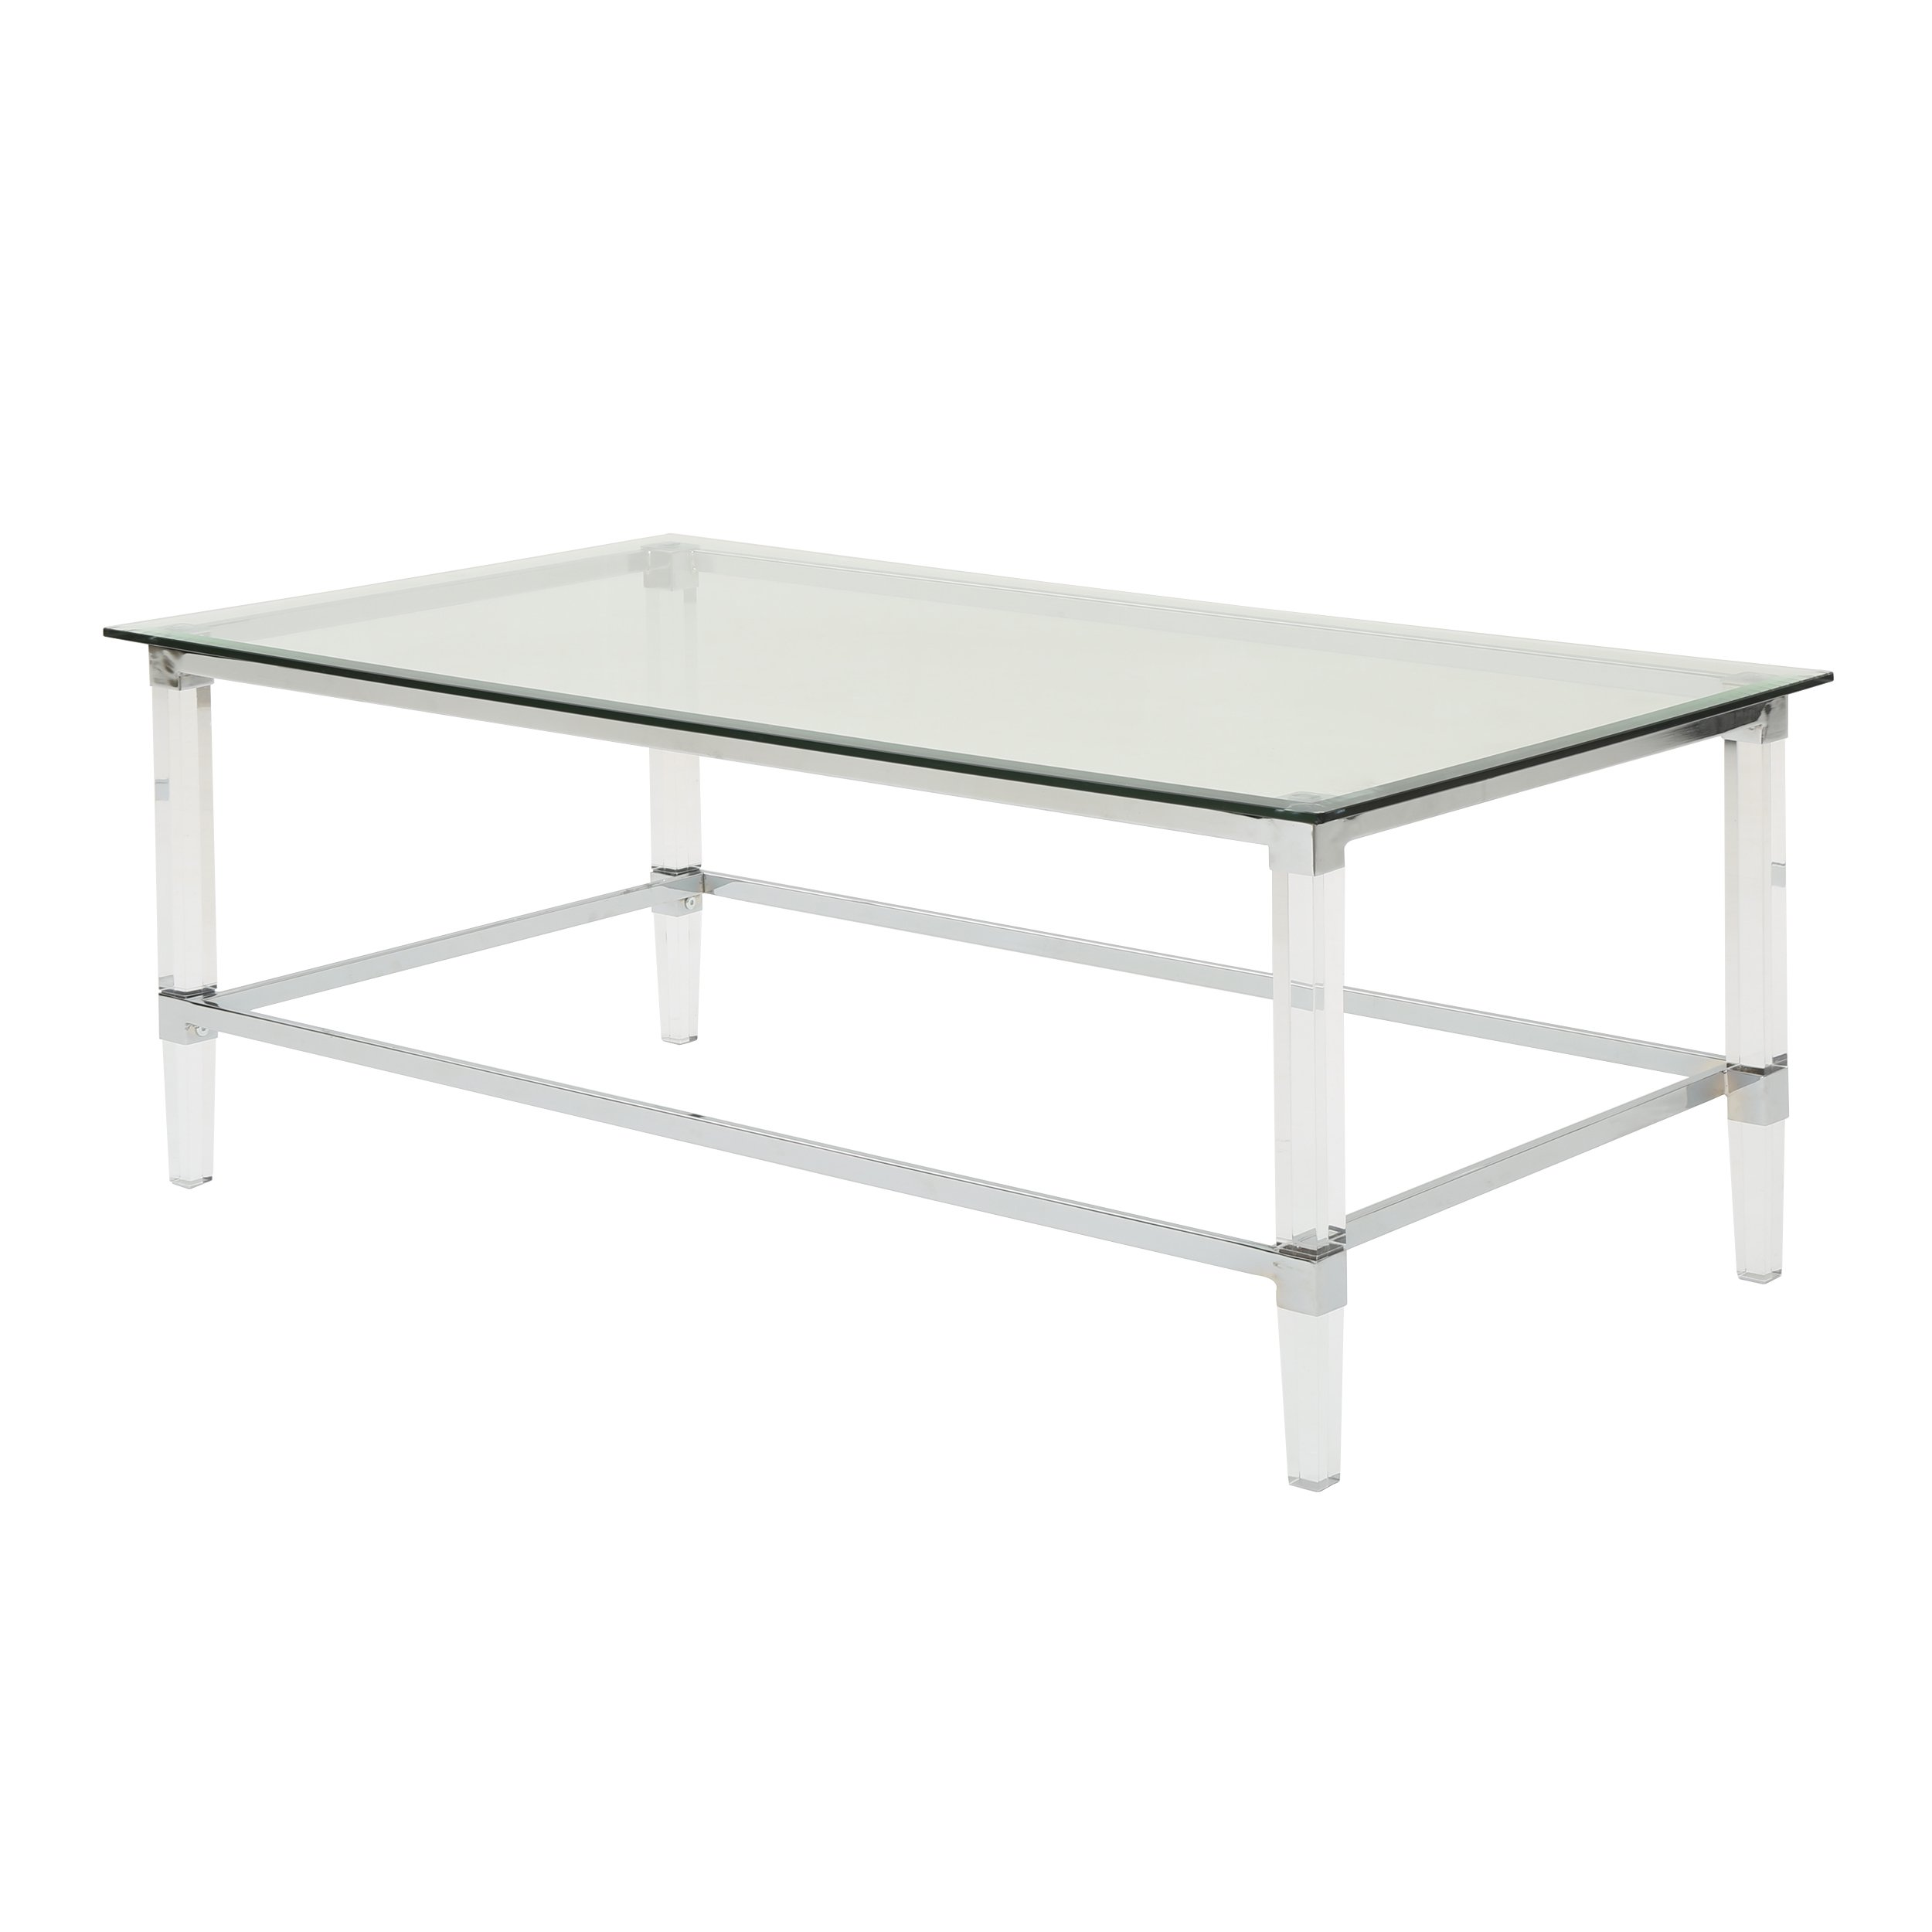 Christopher Knight Home Bayor Modern Tempered Glass Coffee Table with Acrylic and Iron Accents, Clear by Christopher Knight Home